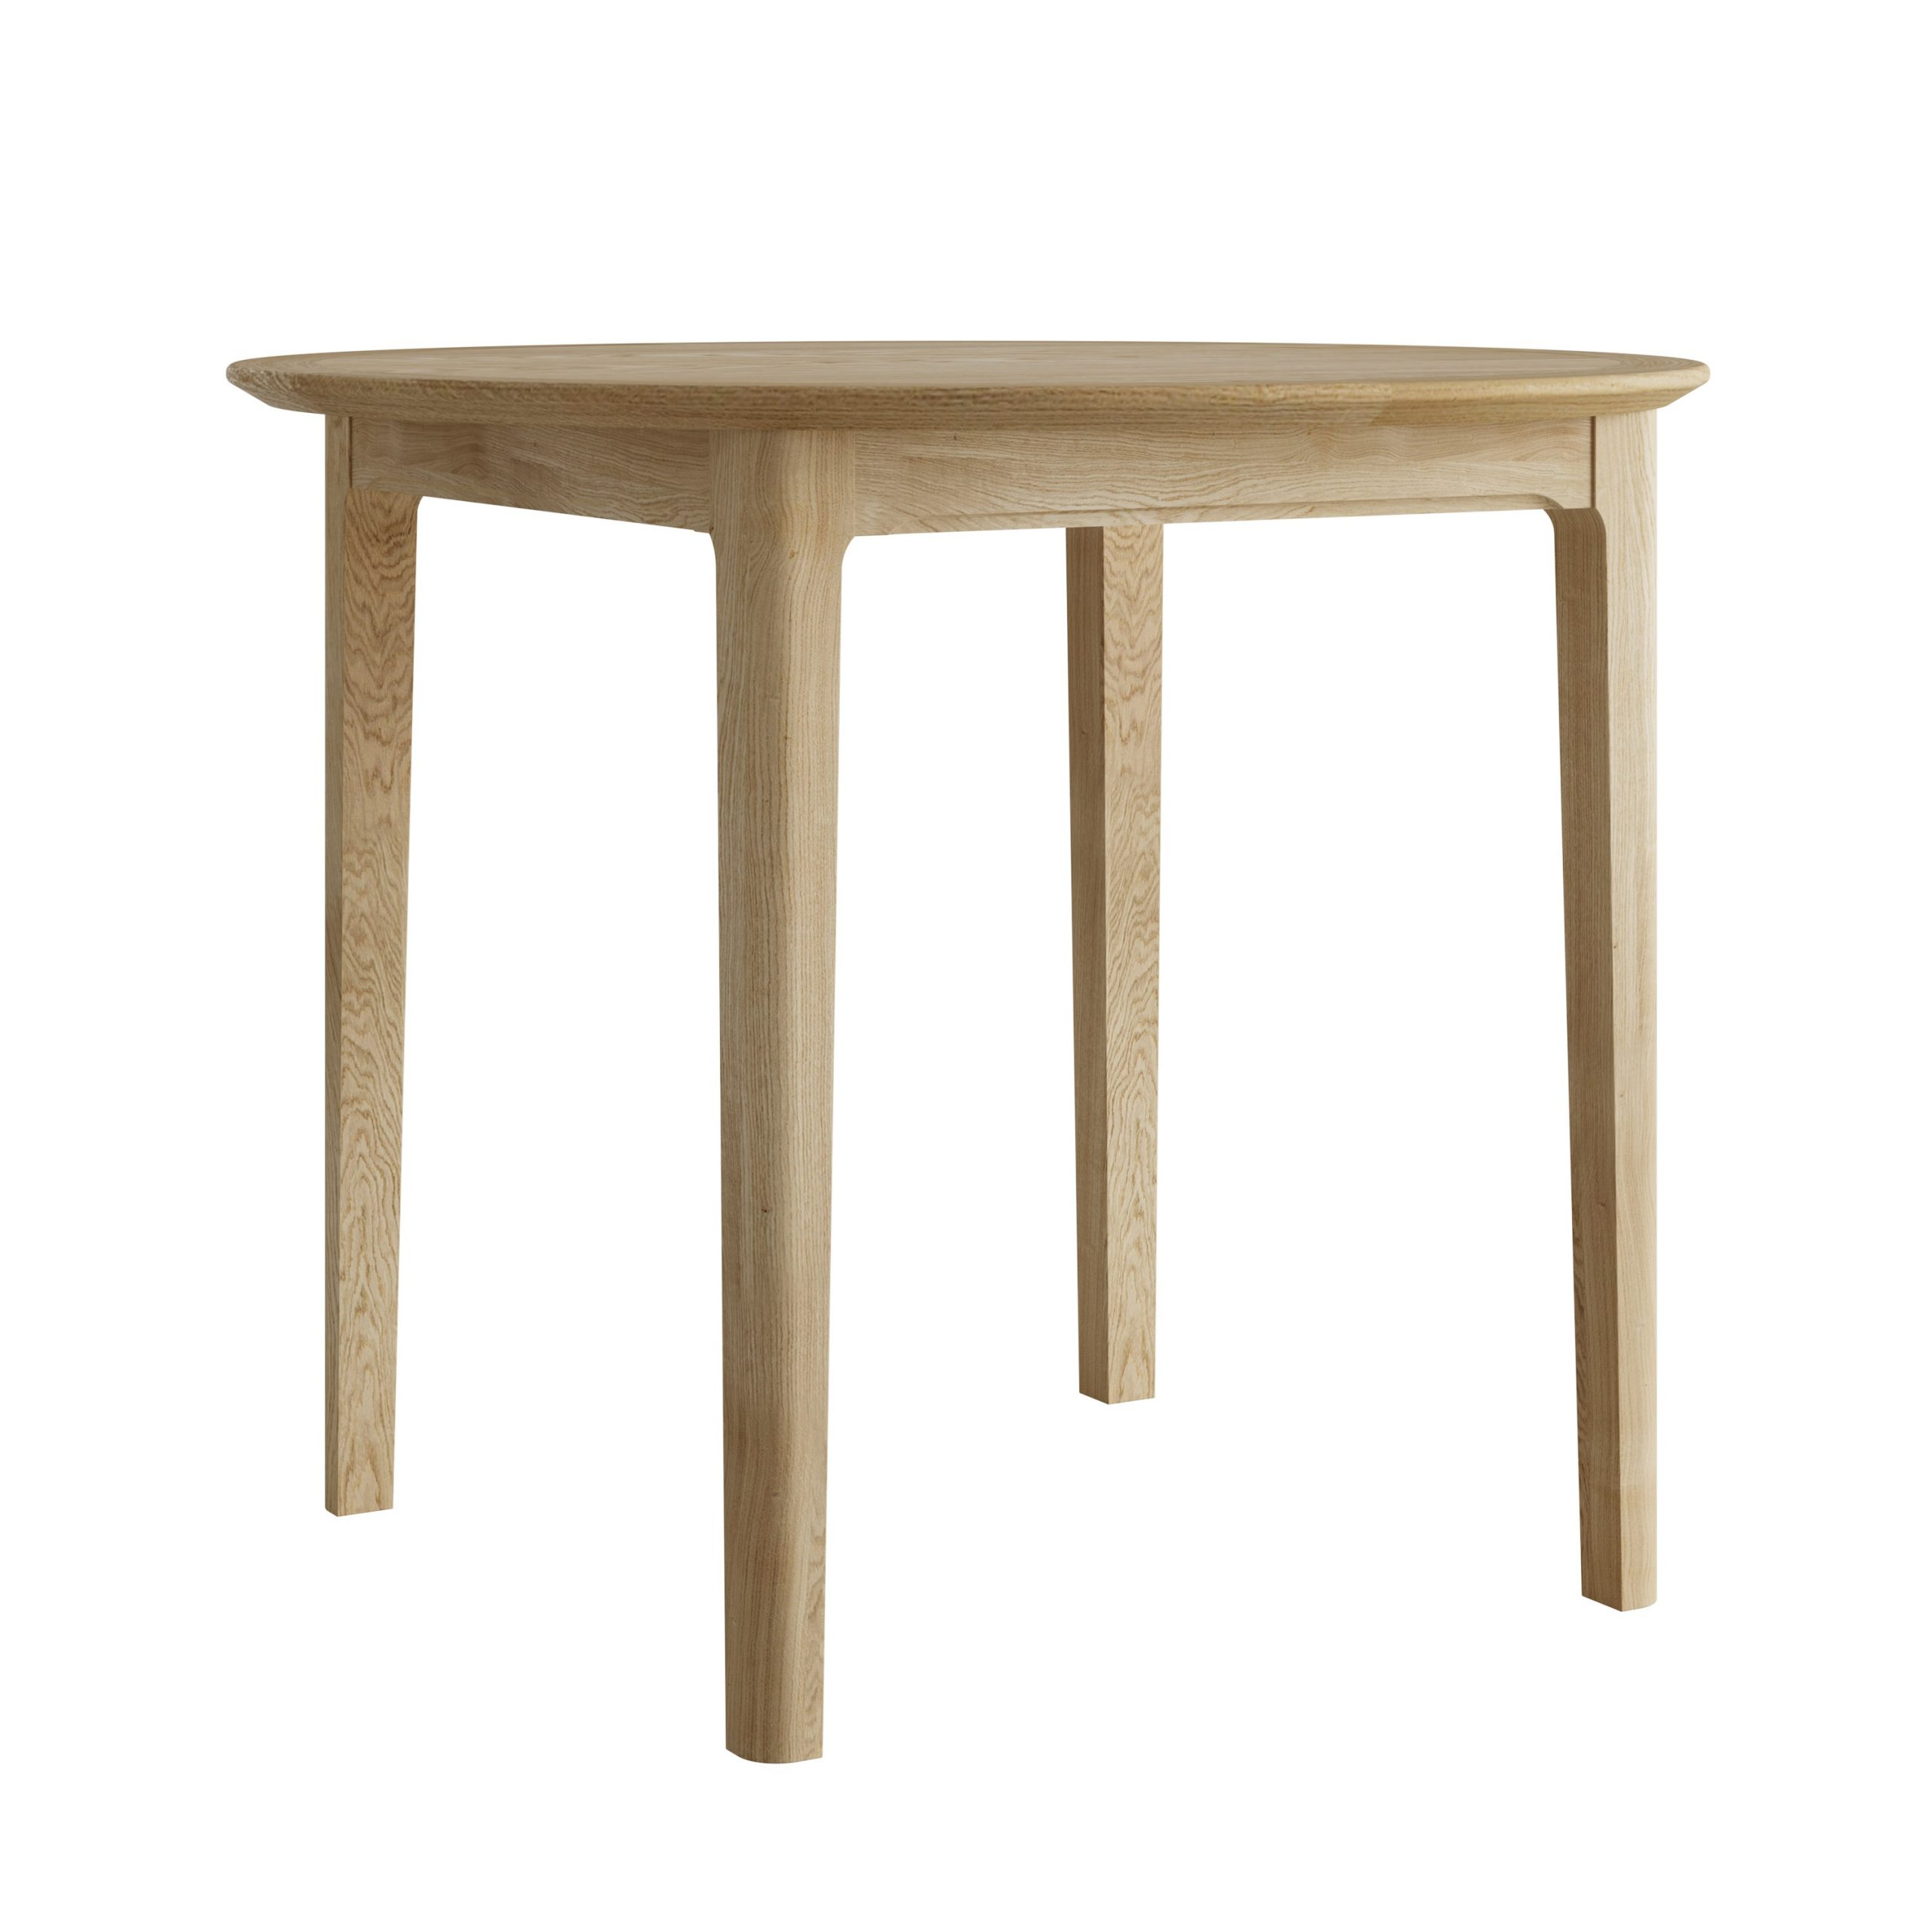 Oak Round Breakfast Table - Our Price - Only £329